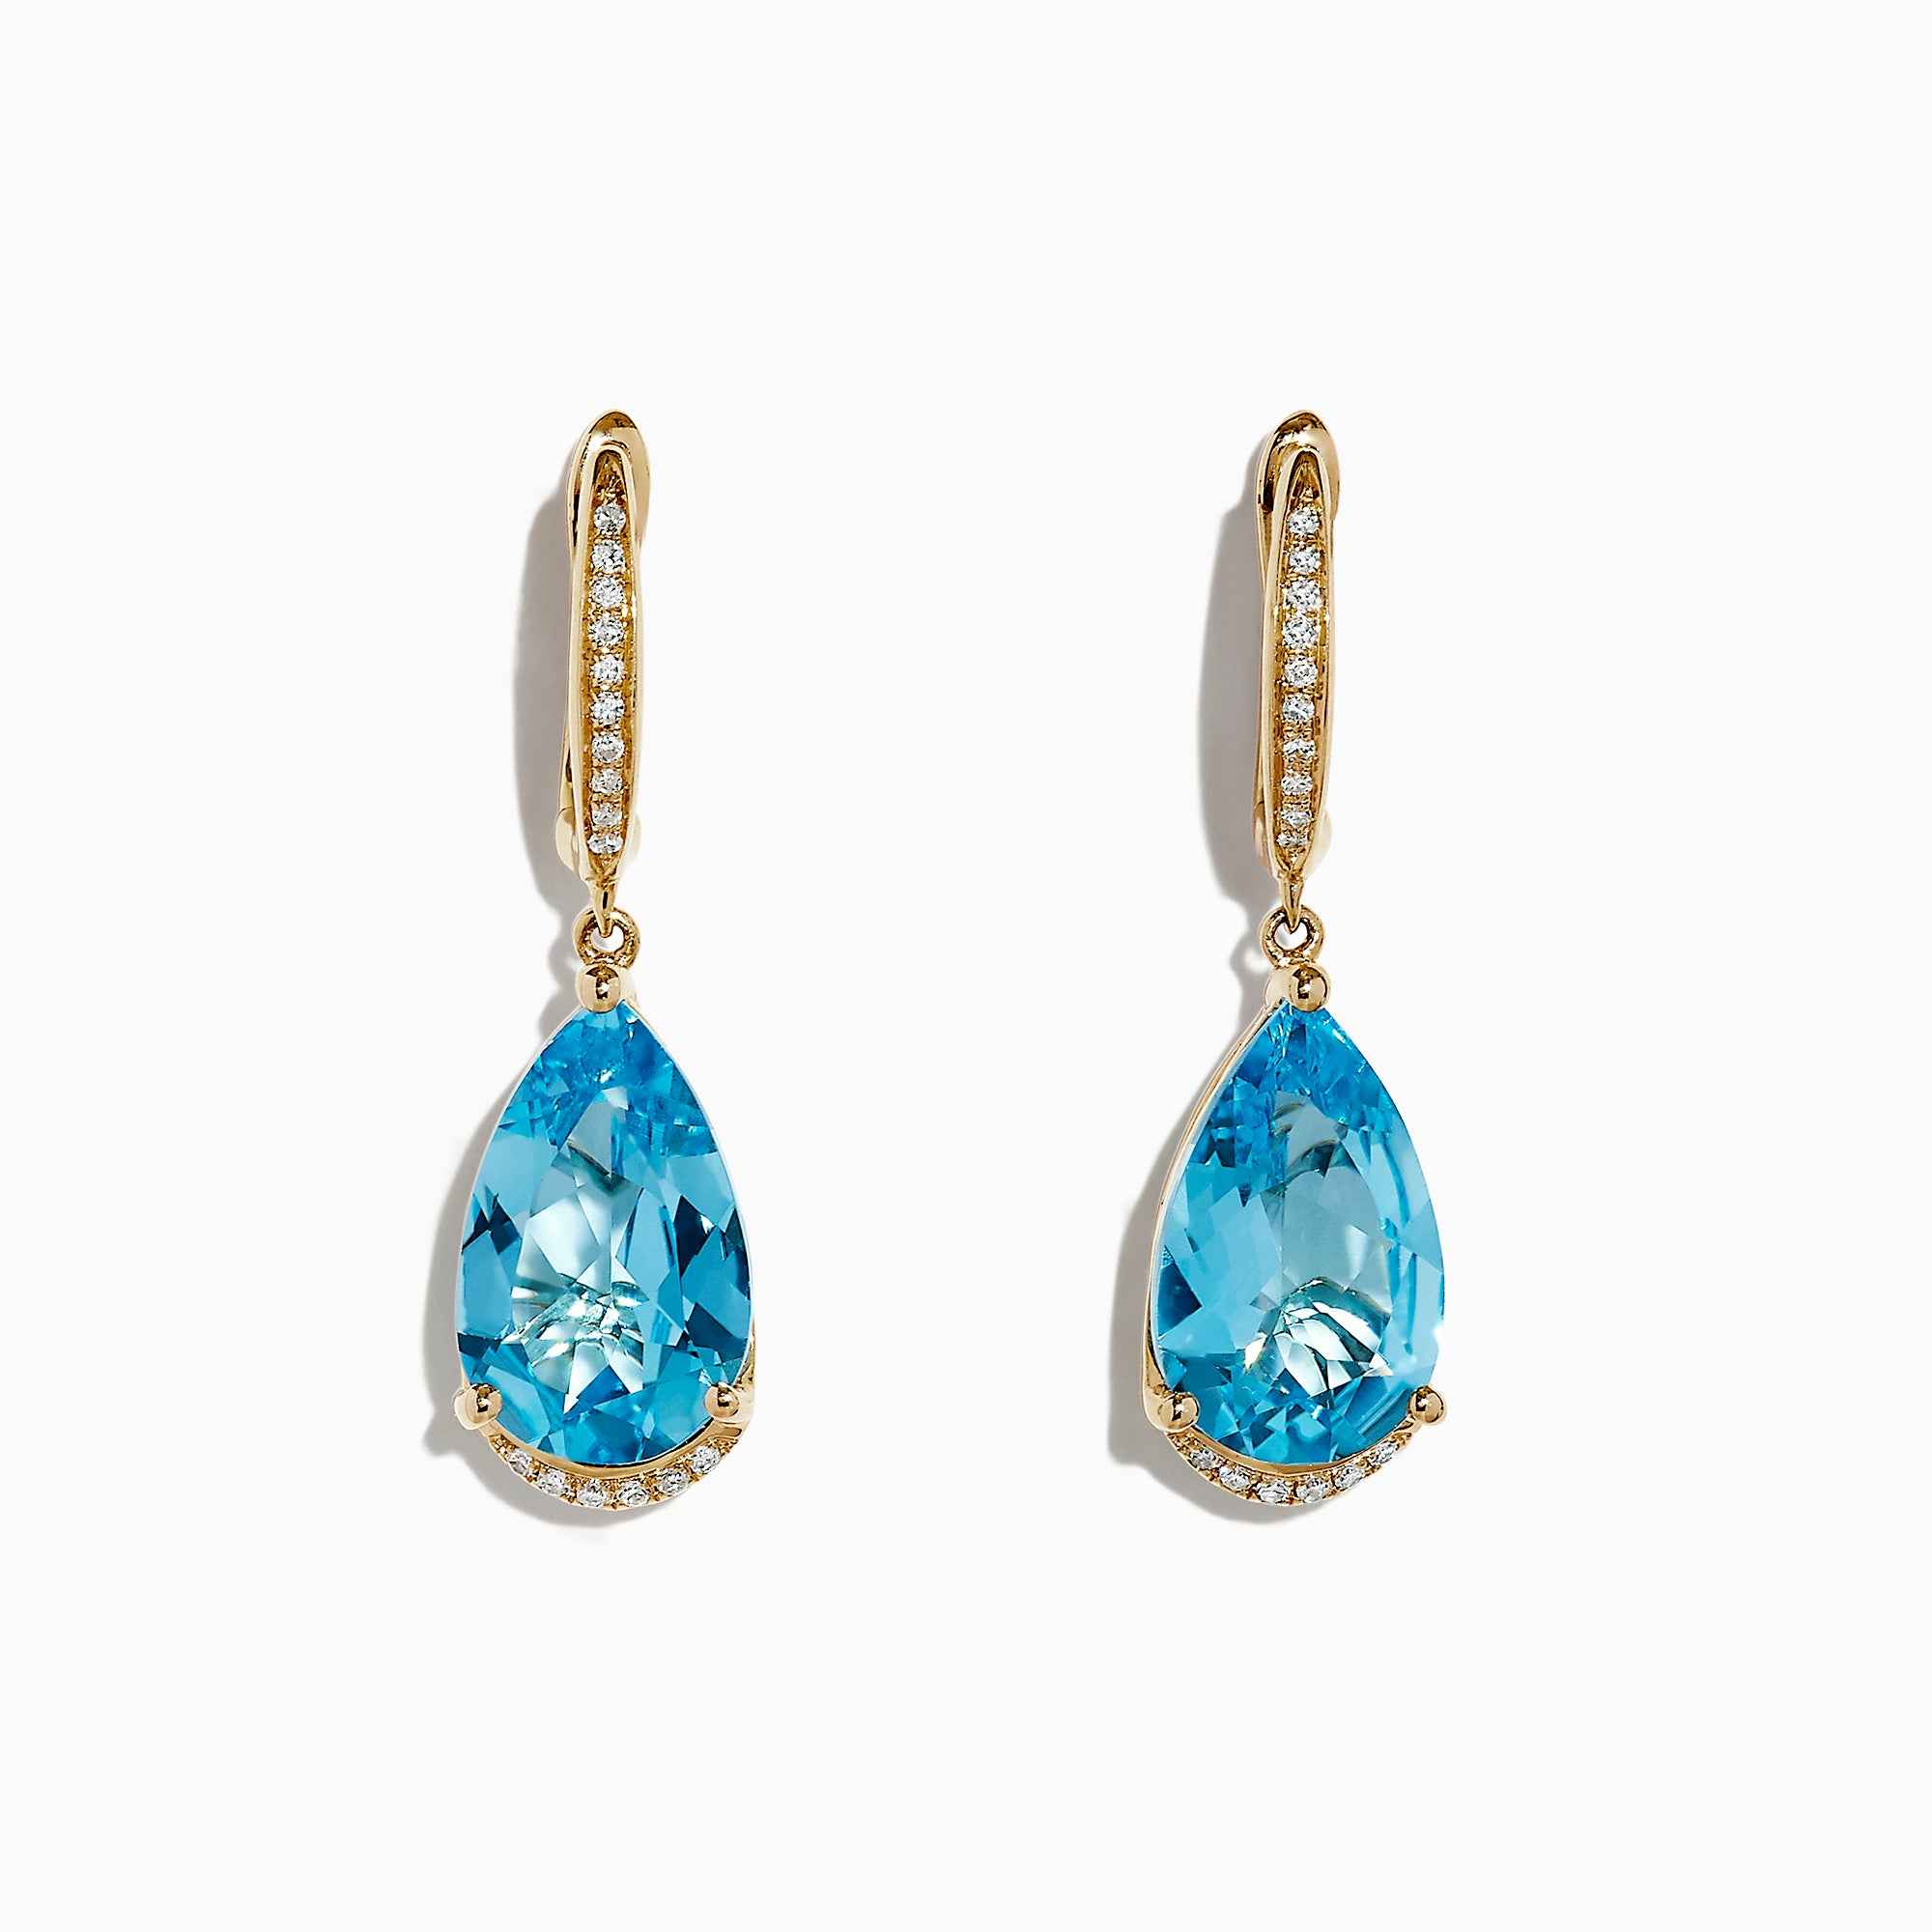 Effy Ocean Bleu 14K Gold Blue Topaz and Diamond Drop Earrings, 15.42 TCW